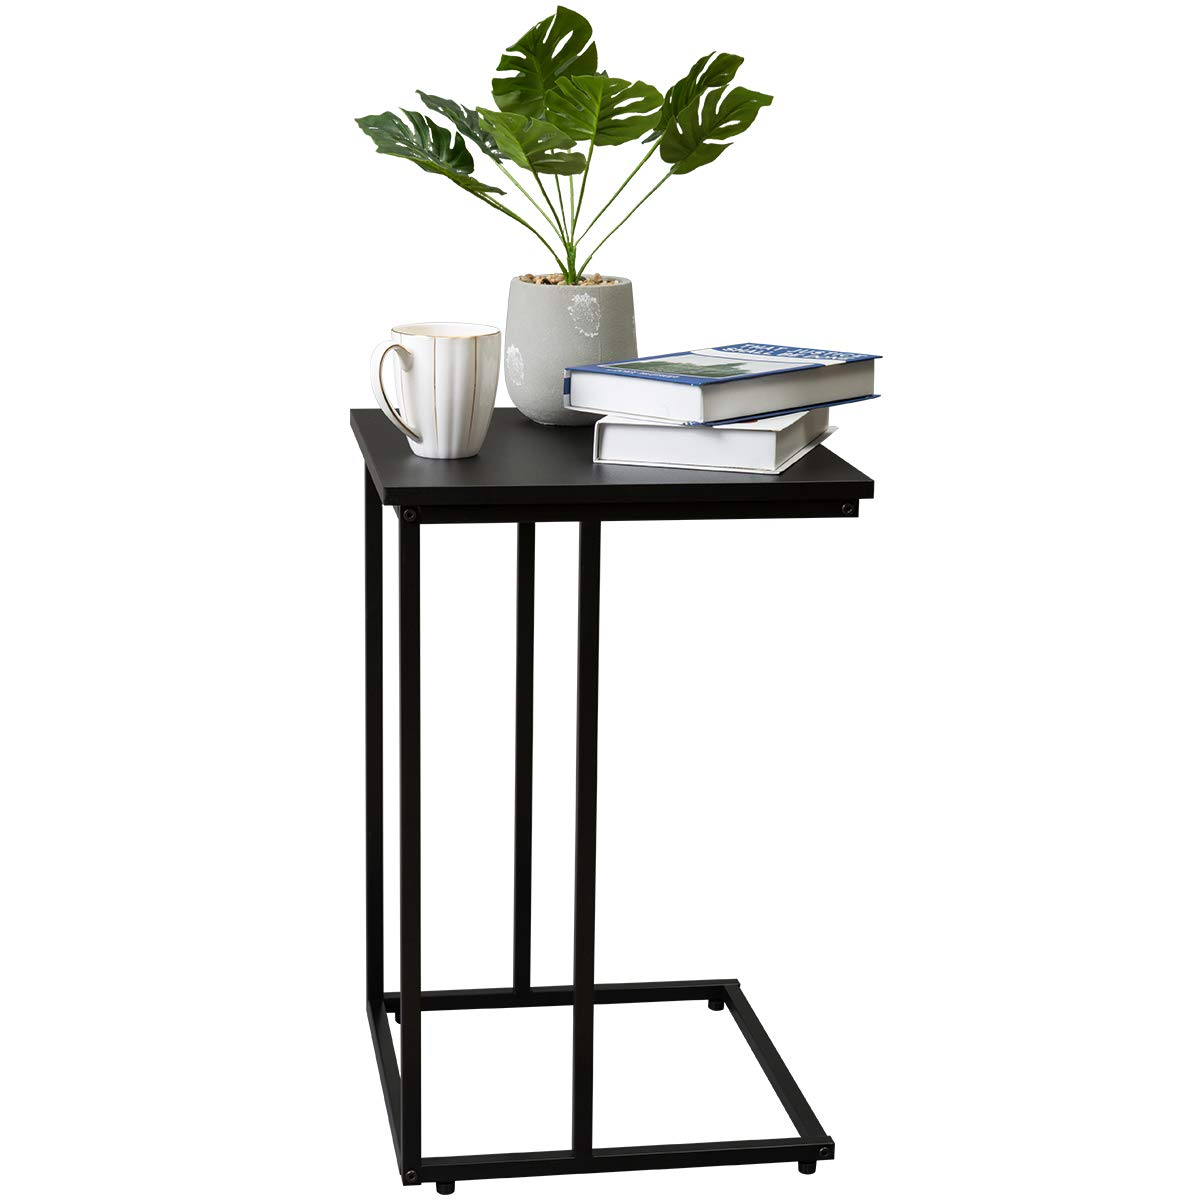 Marble Field C Shaped Snack End Table, Modern Accent Couch Side Table for Living Room Bedroom, Sturdy Metal Finish, 15.7 x 15.7 x24 , Black